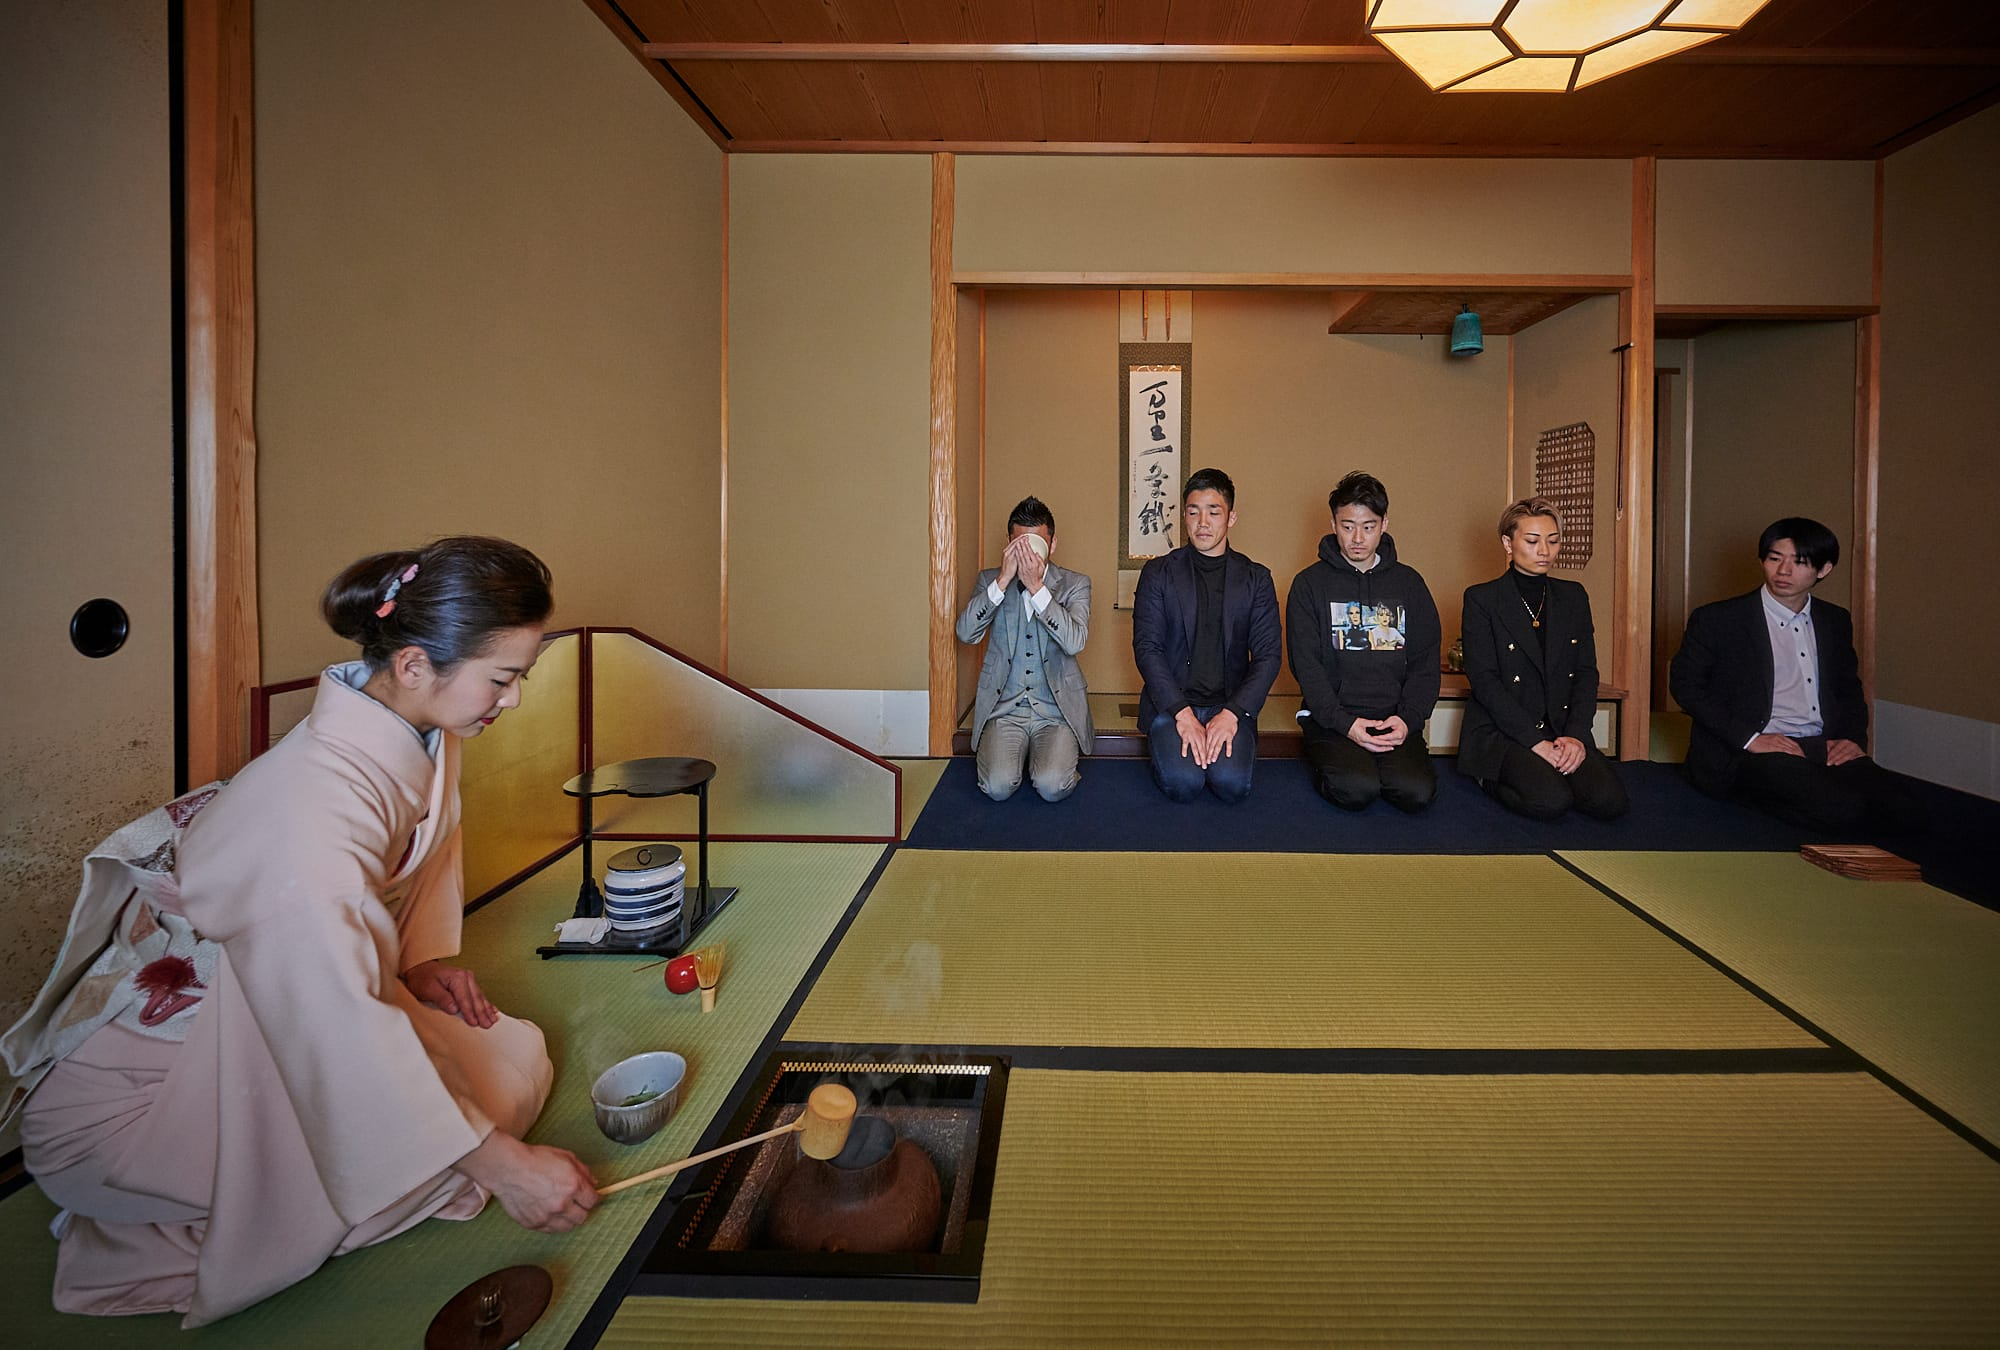 The athlete tea ceremony became a place where athletes from different sports discovered similarities in each other.